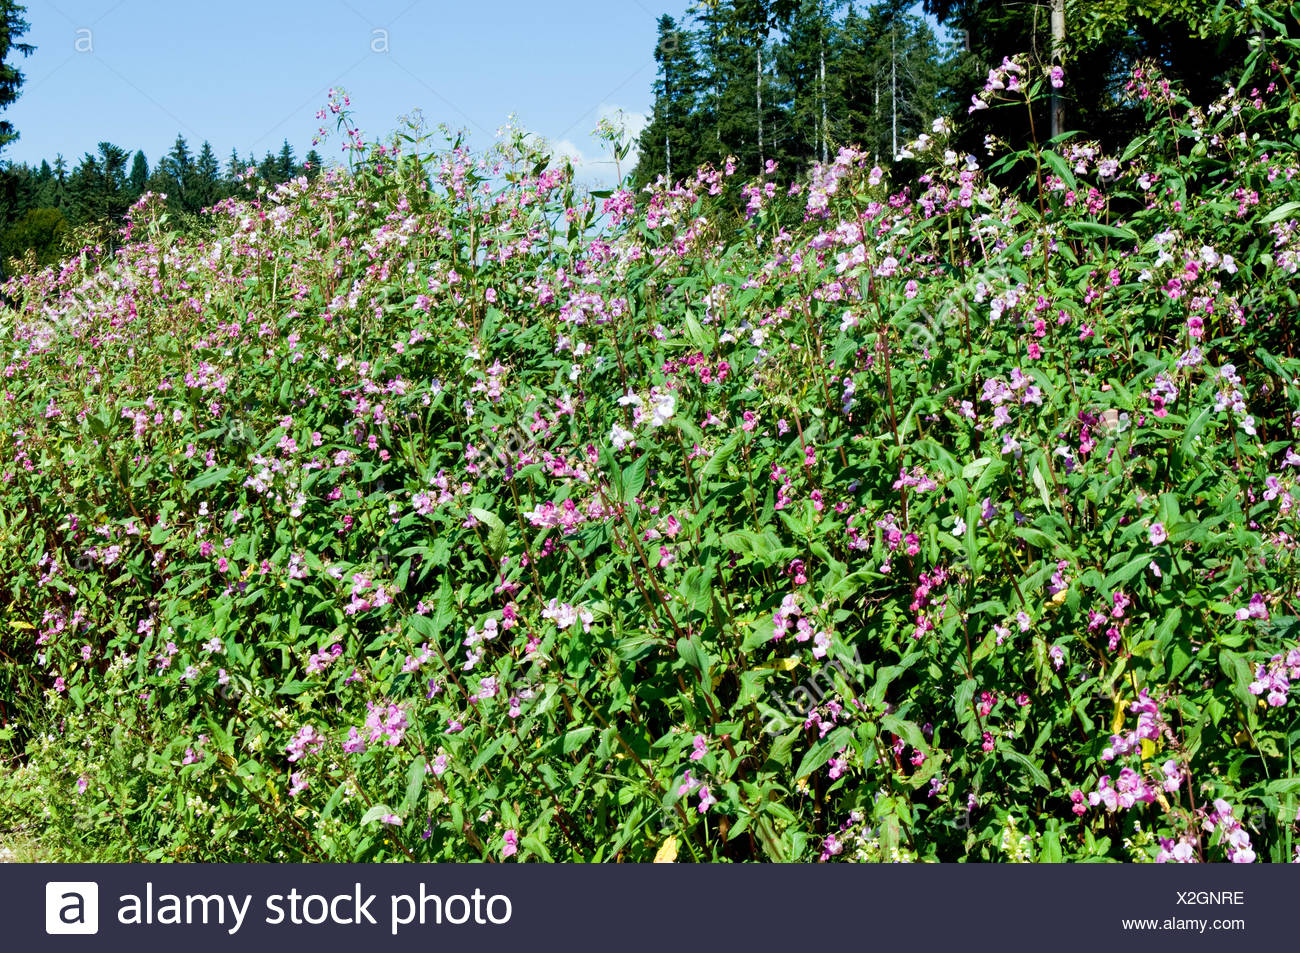 Indisches Springkraut / Himalayan Balsam Stock Photo